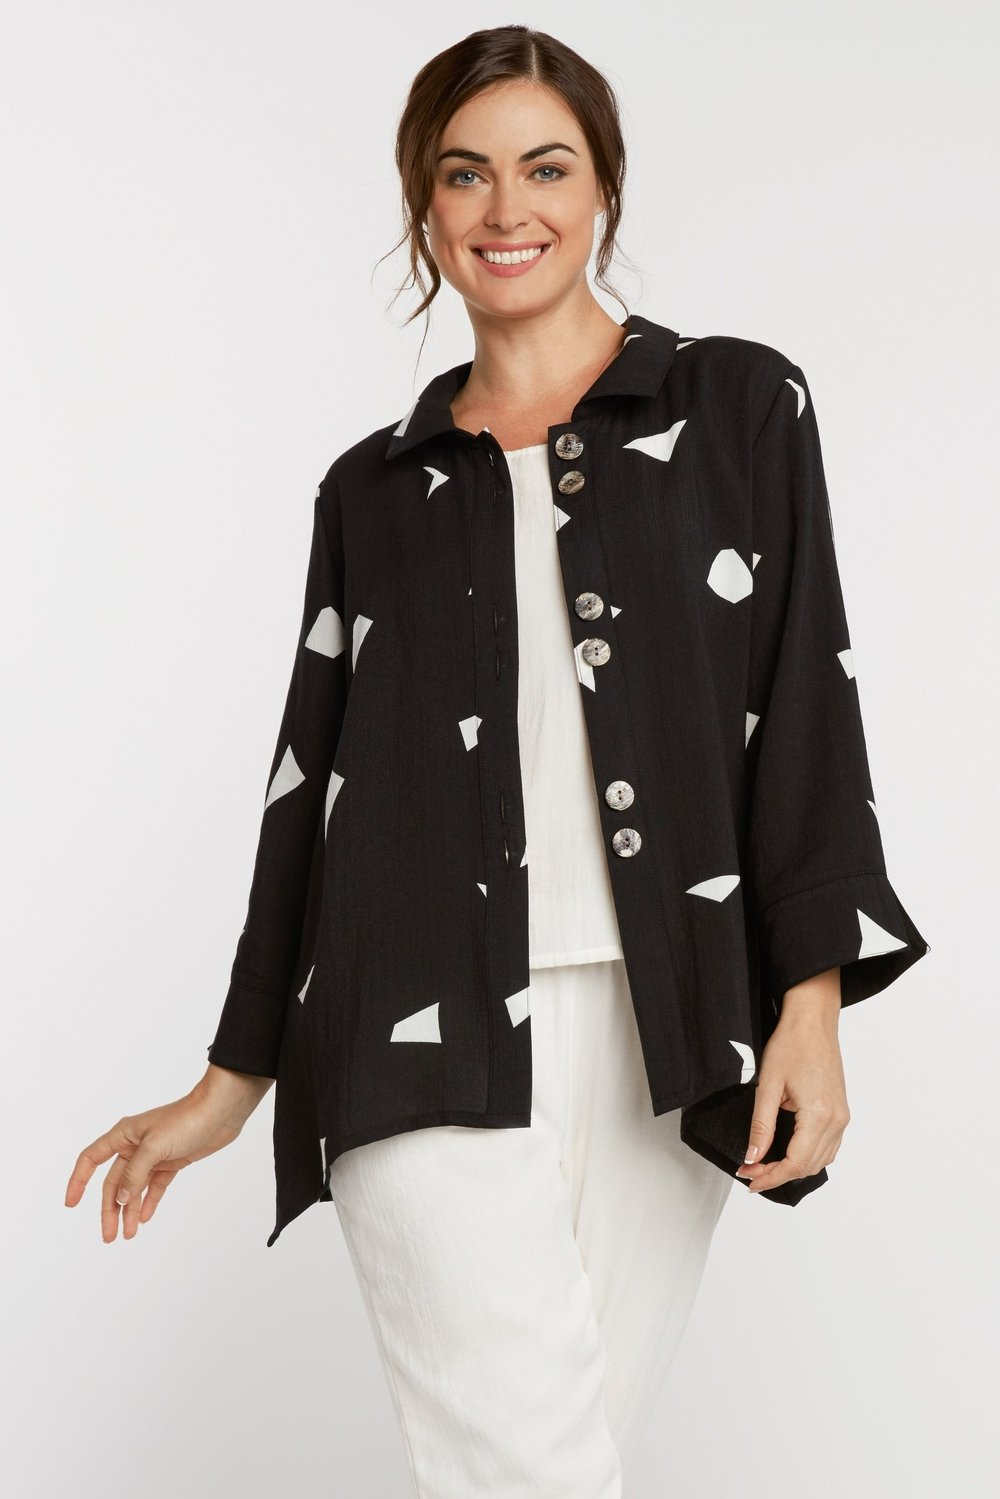 AA132 - Susan's Jacket    CL9333 - Shapes on Black